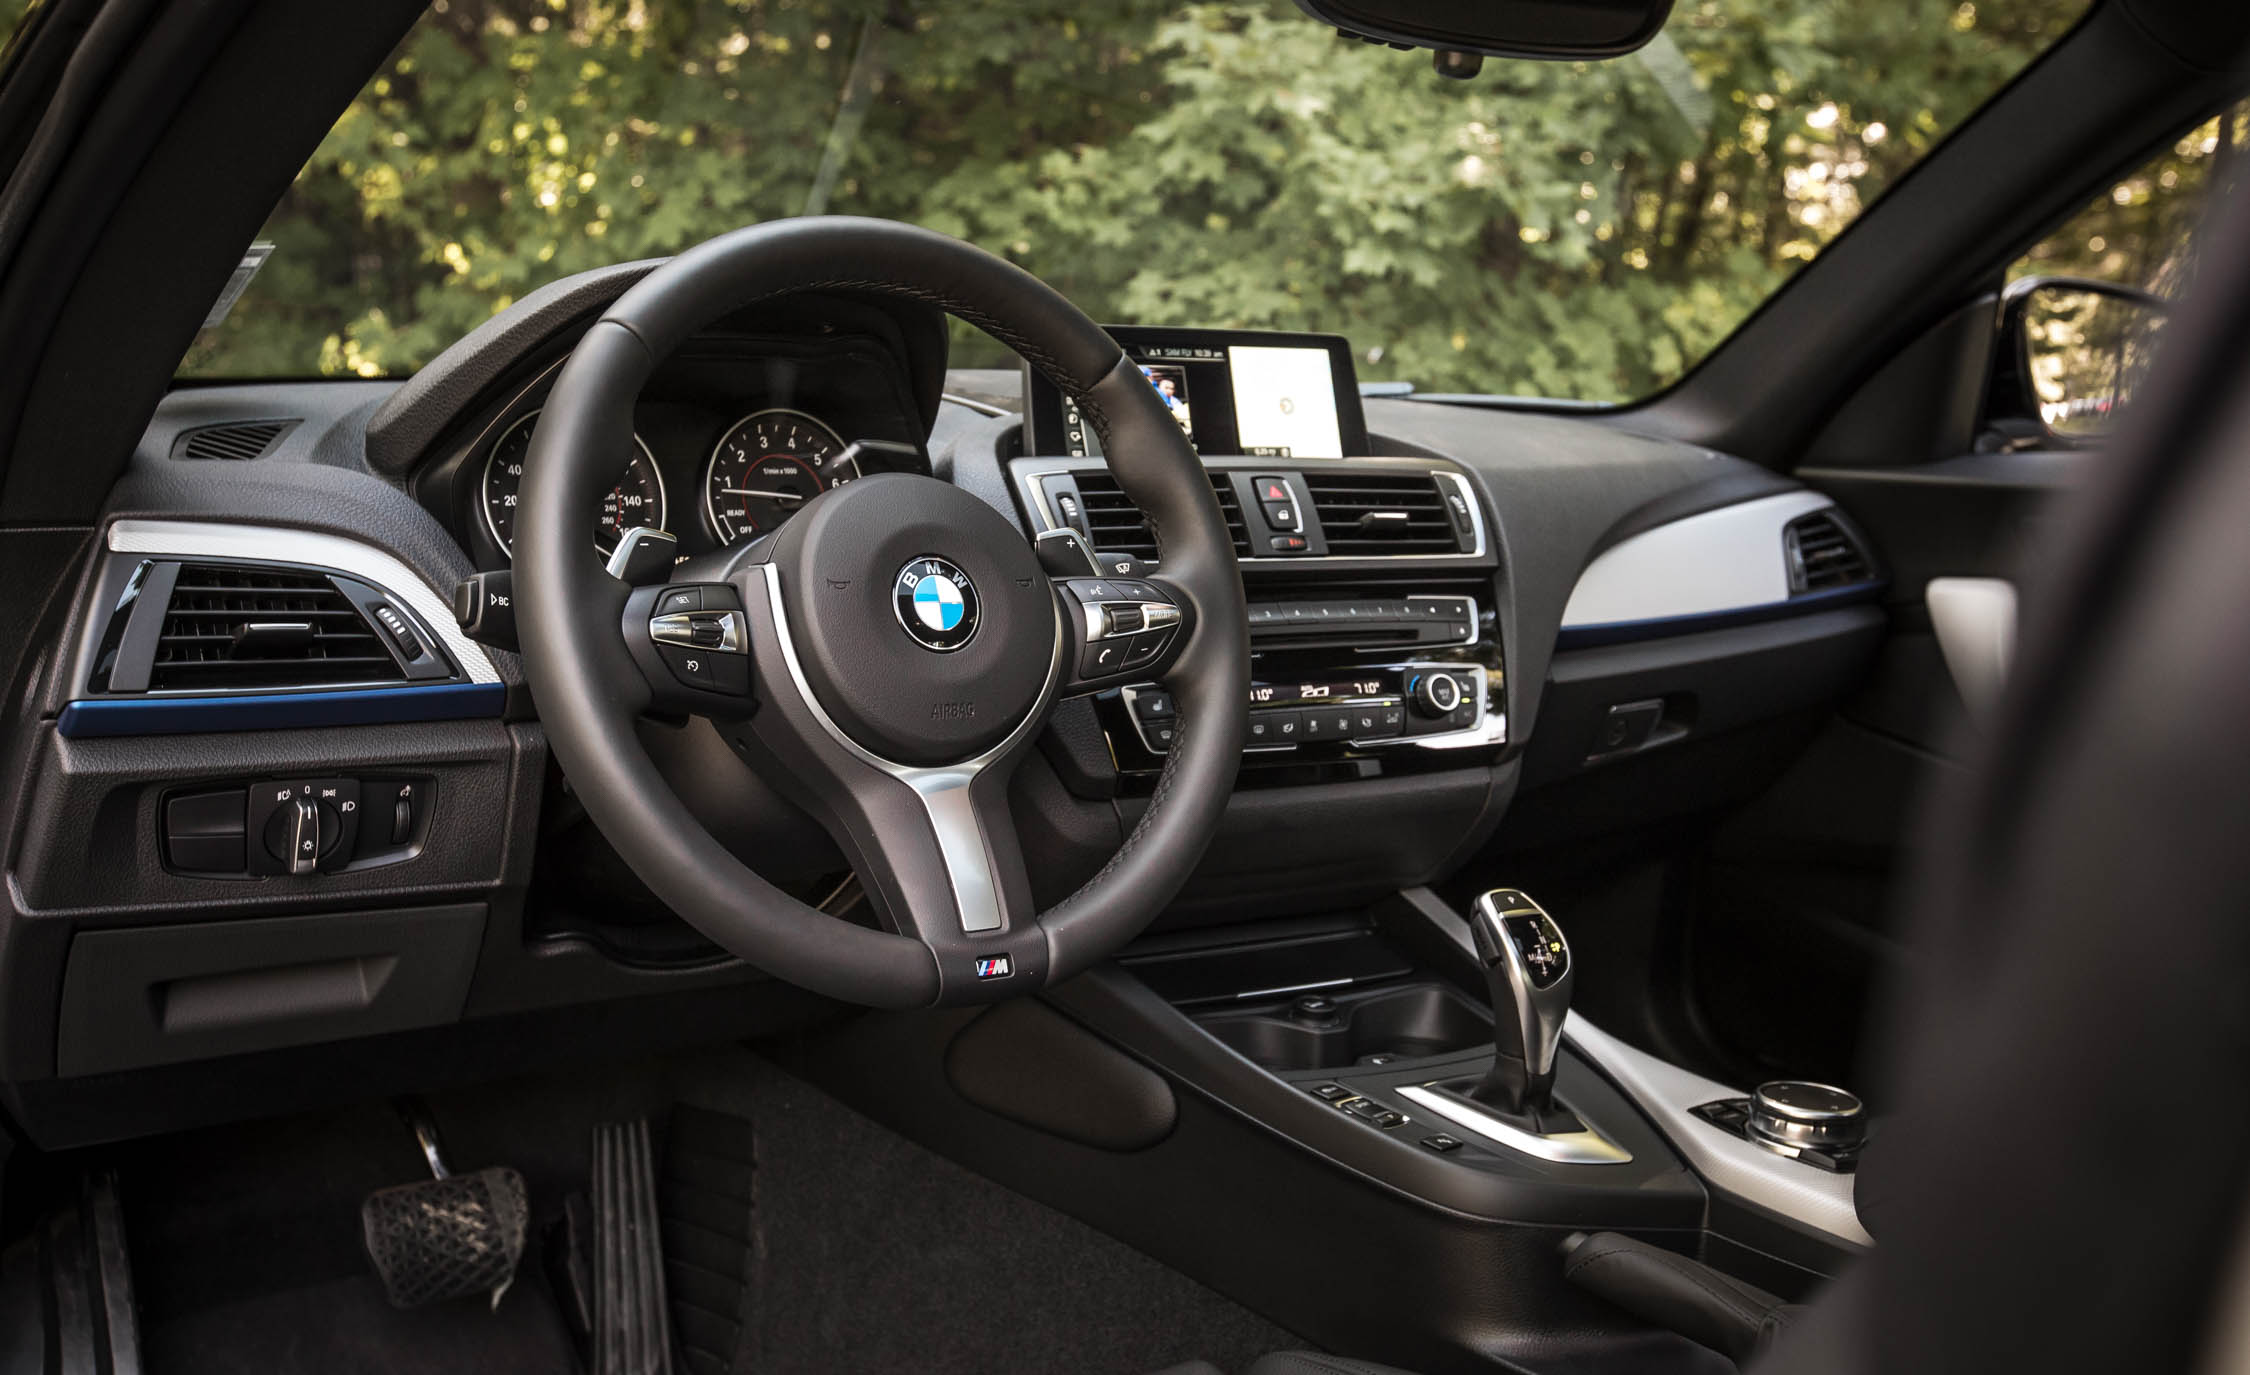 2017 BMW M240i Coupe Automatic Interior View Driver Steering (View 5 of 36)